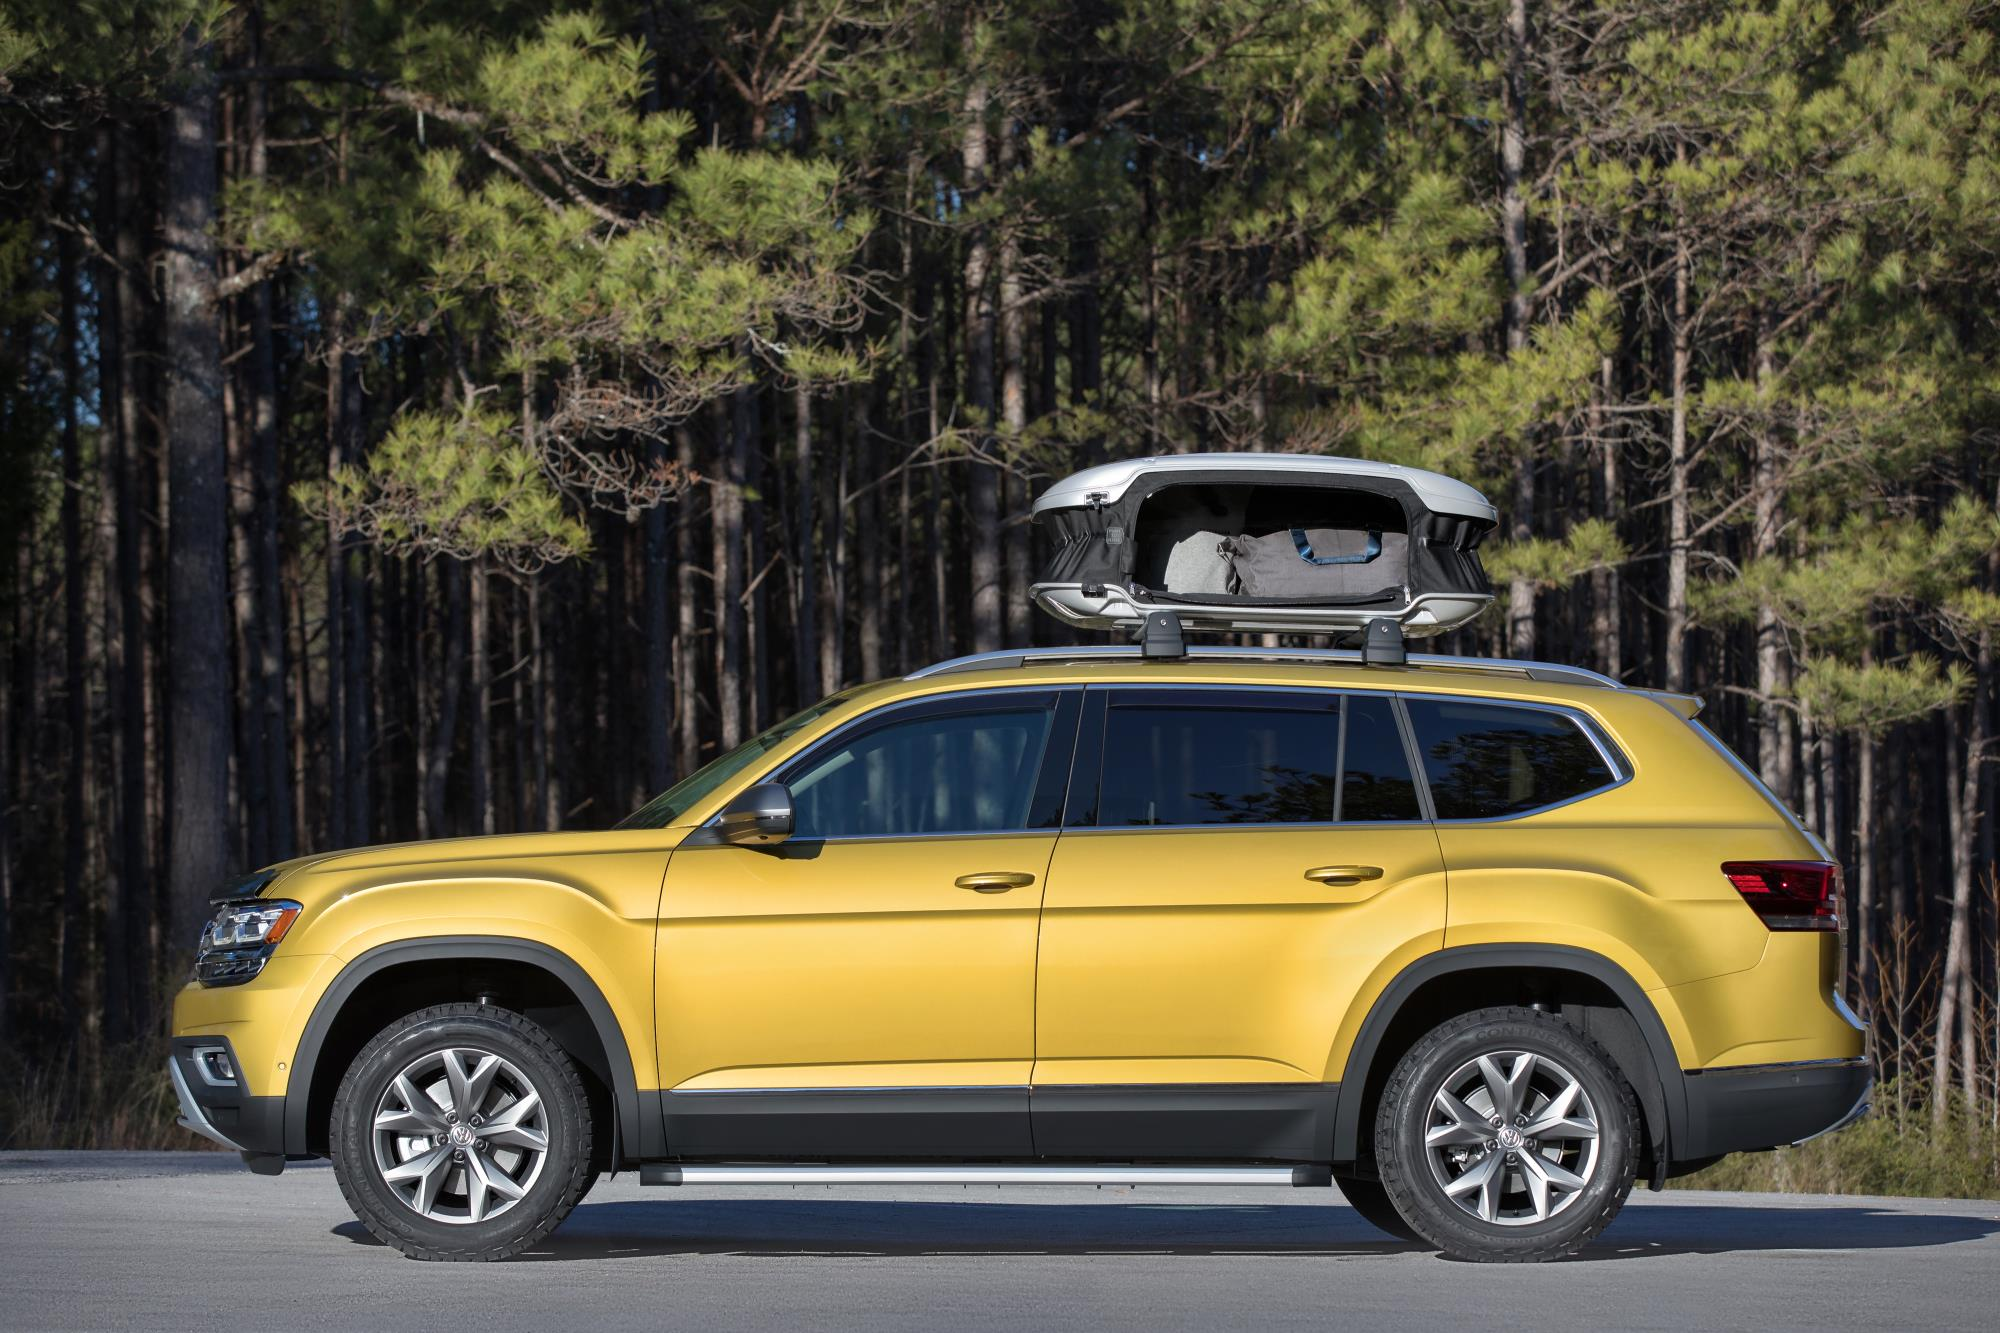 A Volkswagen Atlas With A Roof Box Is An Adventure Vehicle Apparently & A Volkswagen Atlas With A Roof Box Is An Adventure Vehicle ... Aboutintivar.Com